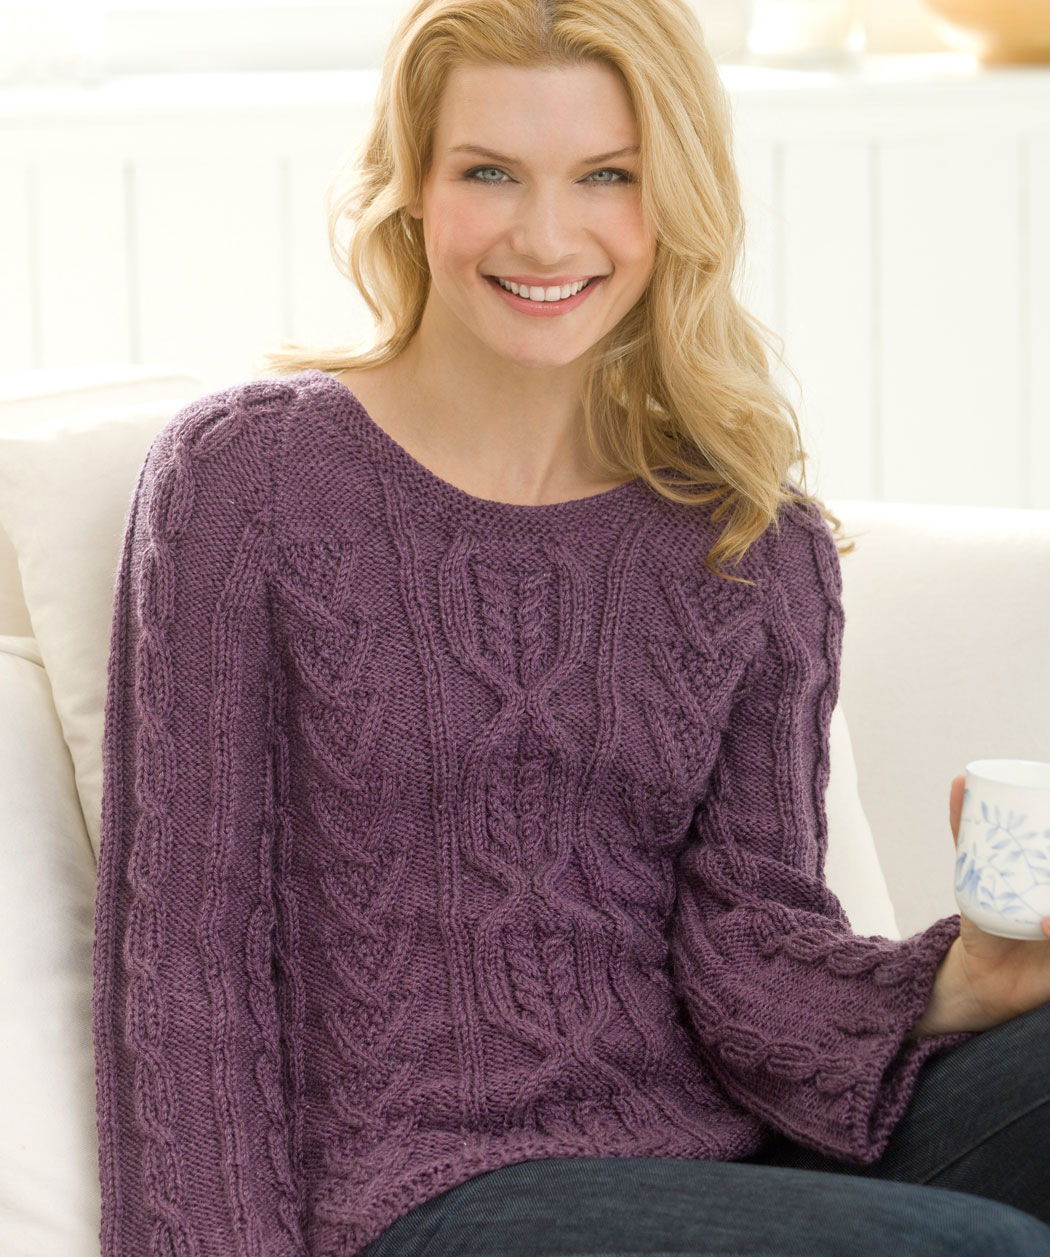 Irish Knitting Patterns Free : Cable Knit Sweater Patterns A Knitting Blog